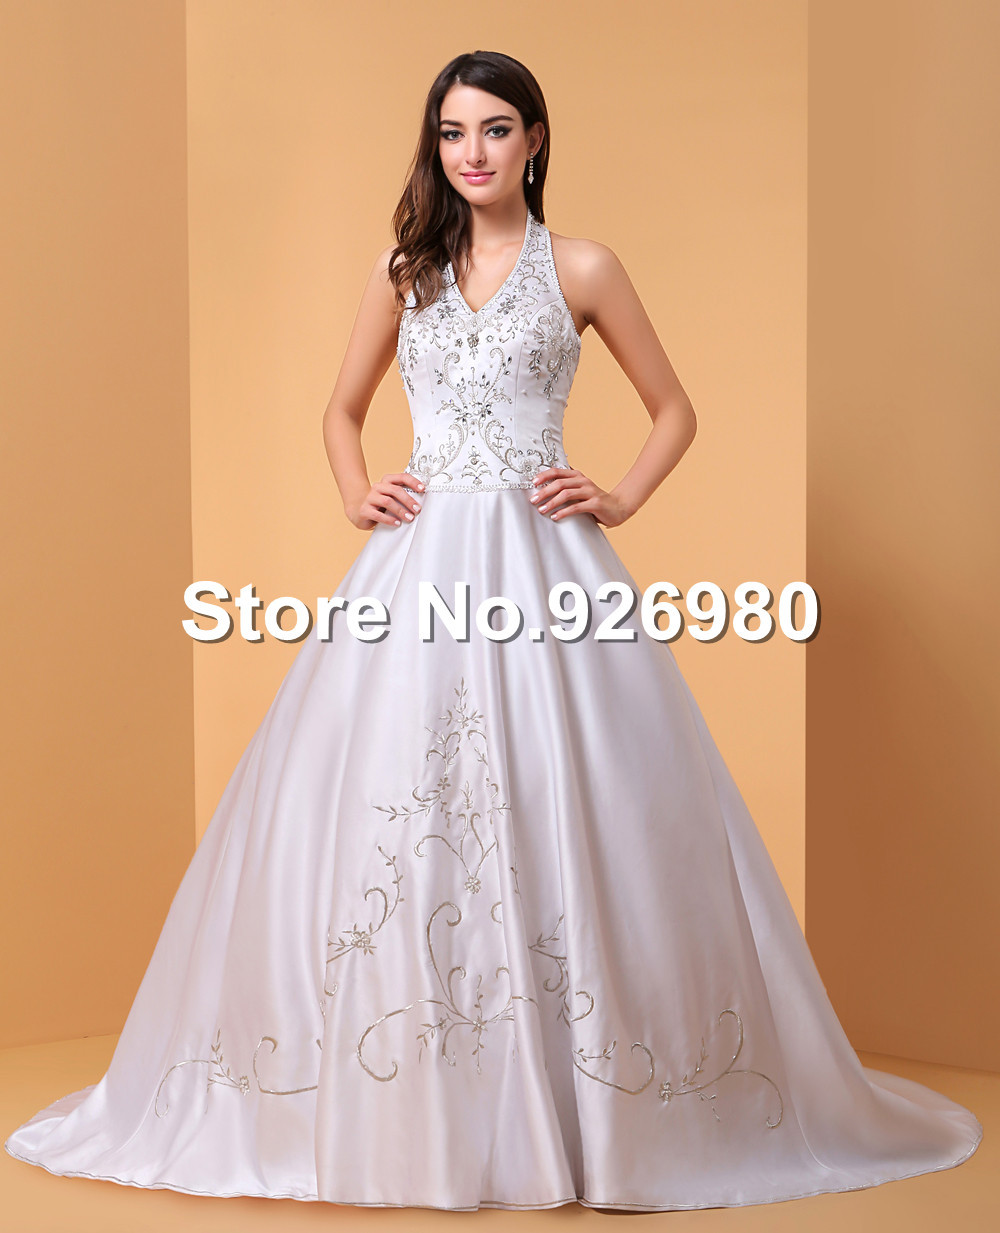 Free shipping halter beaded dress for weddings satin for Wedding dresses with lace up back